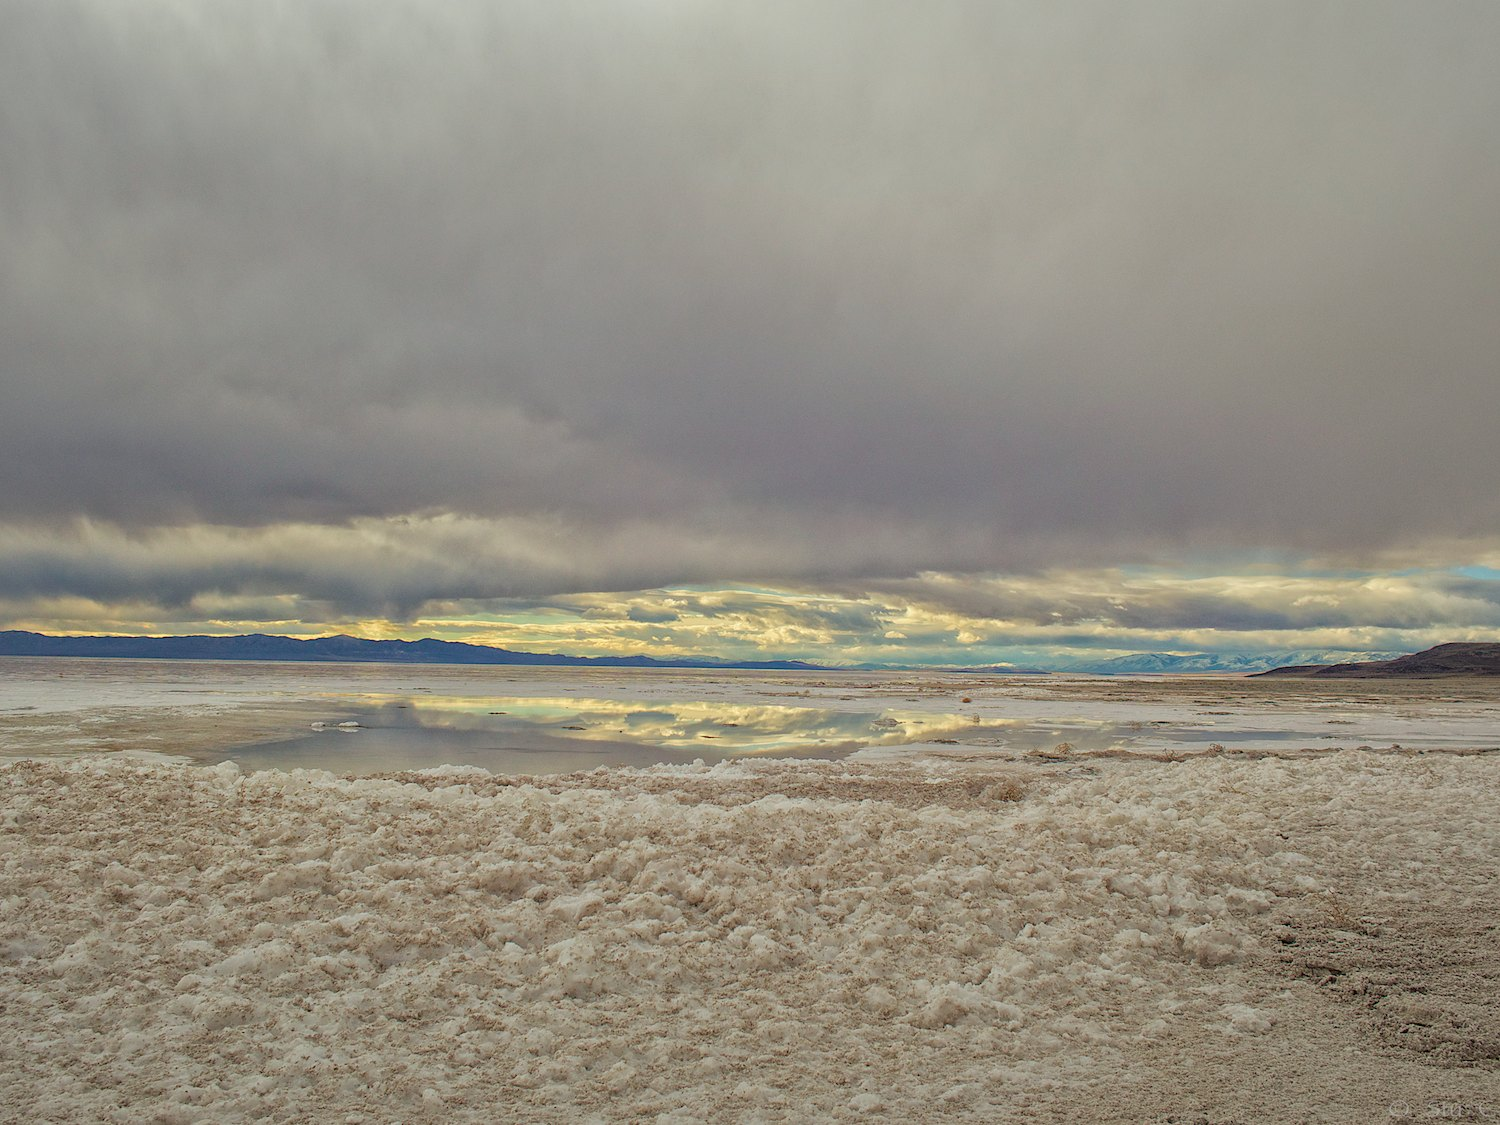 Remote sunset reflects in a salt pond on The Great Salt Lake